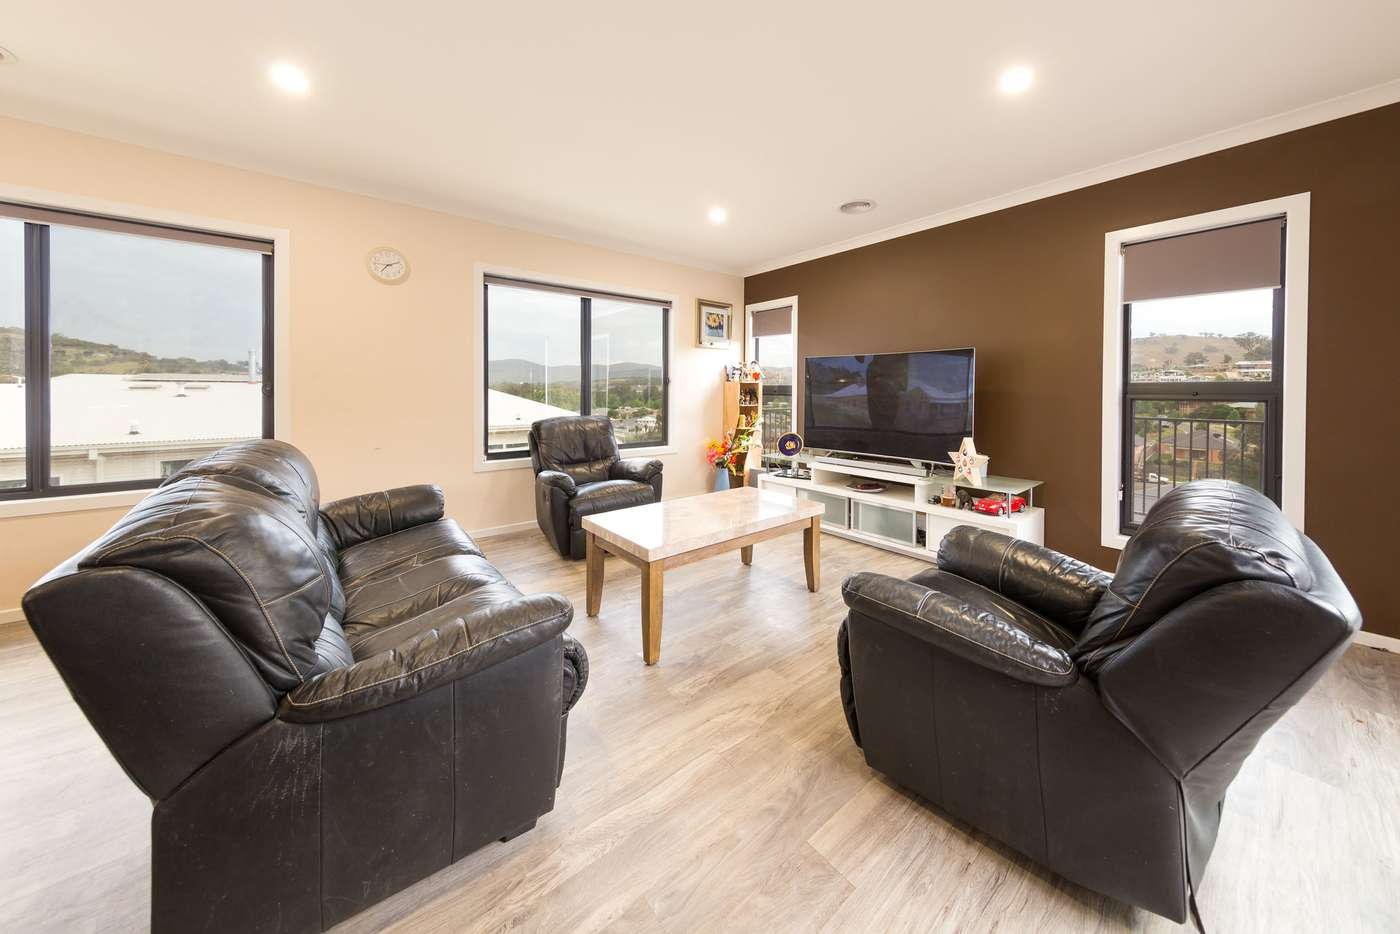 Fifth view of Homely house listing, 15 Tanner Terrace, Wodonga VIC 3690